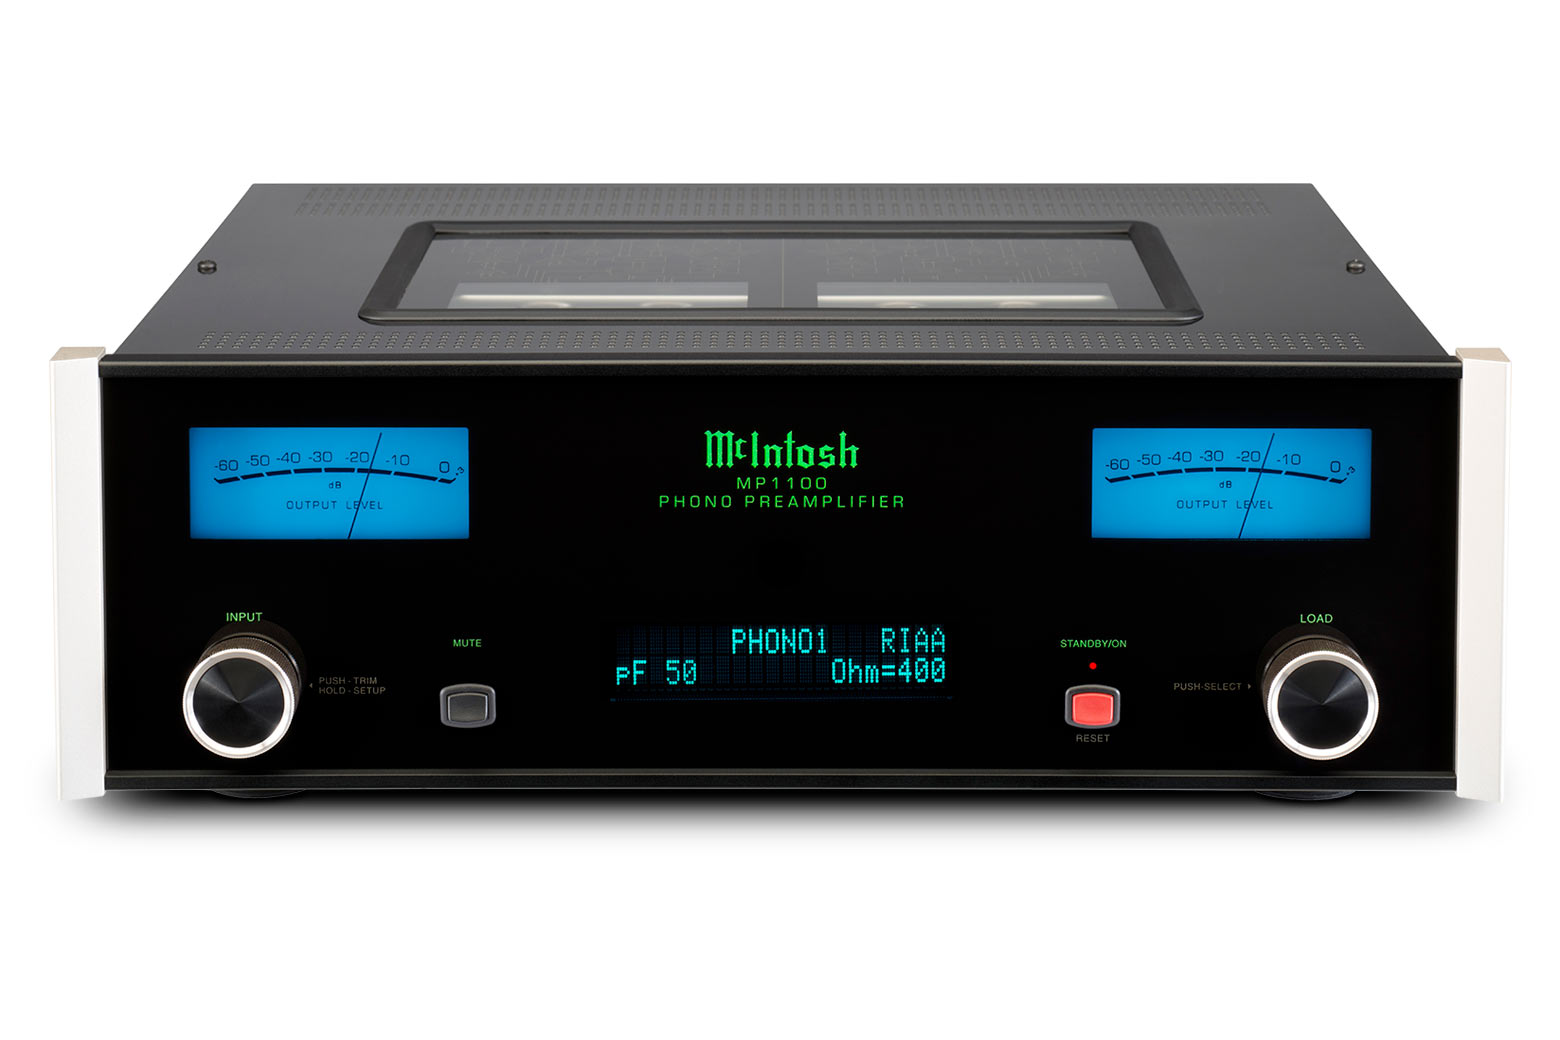 Mcintosh Mp1100 Vacuum Tube Phono Preamplifier The Filter Circuit For Scratch And Rumble Noise Electronic